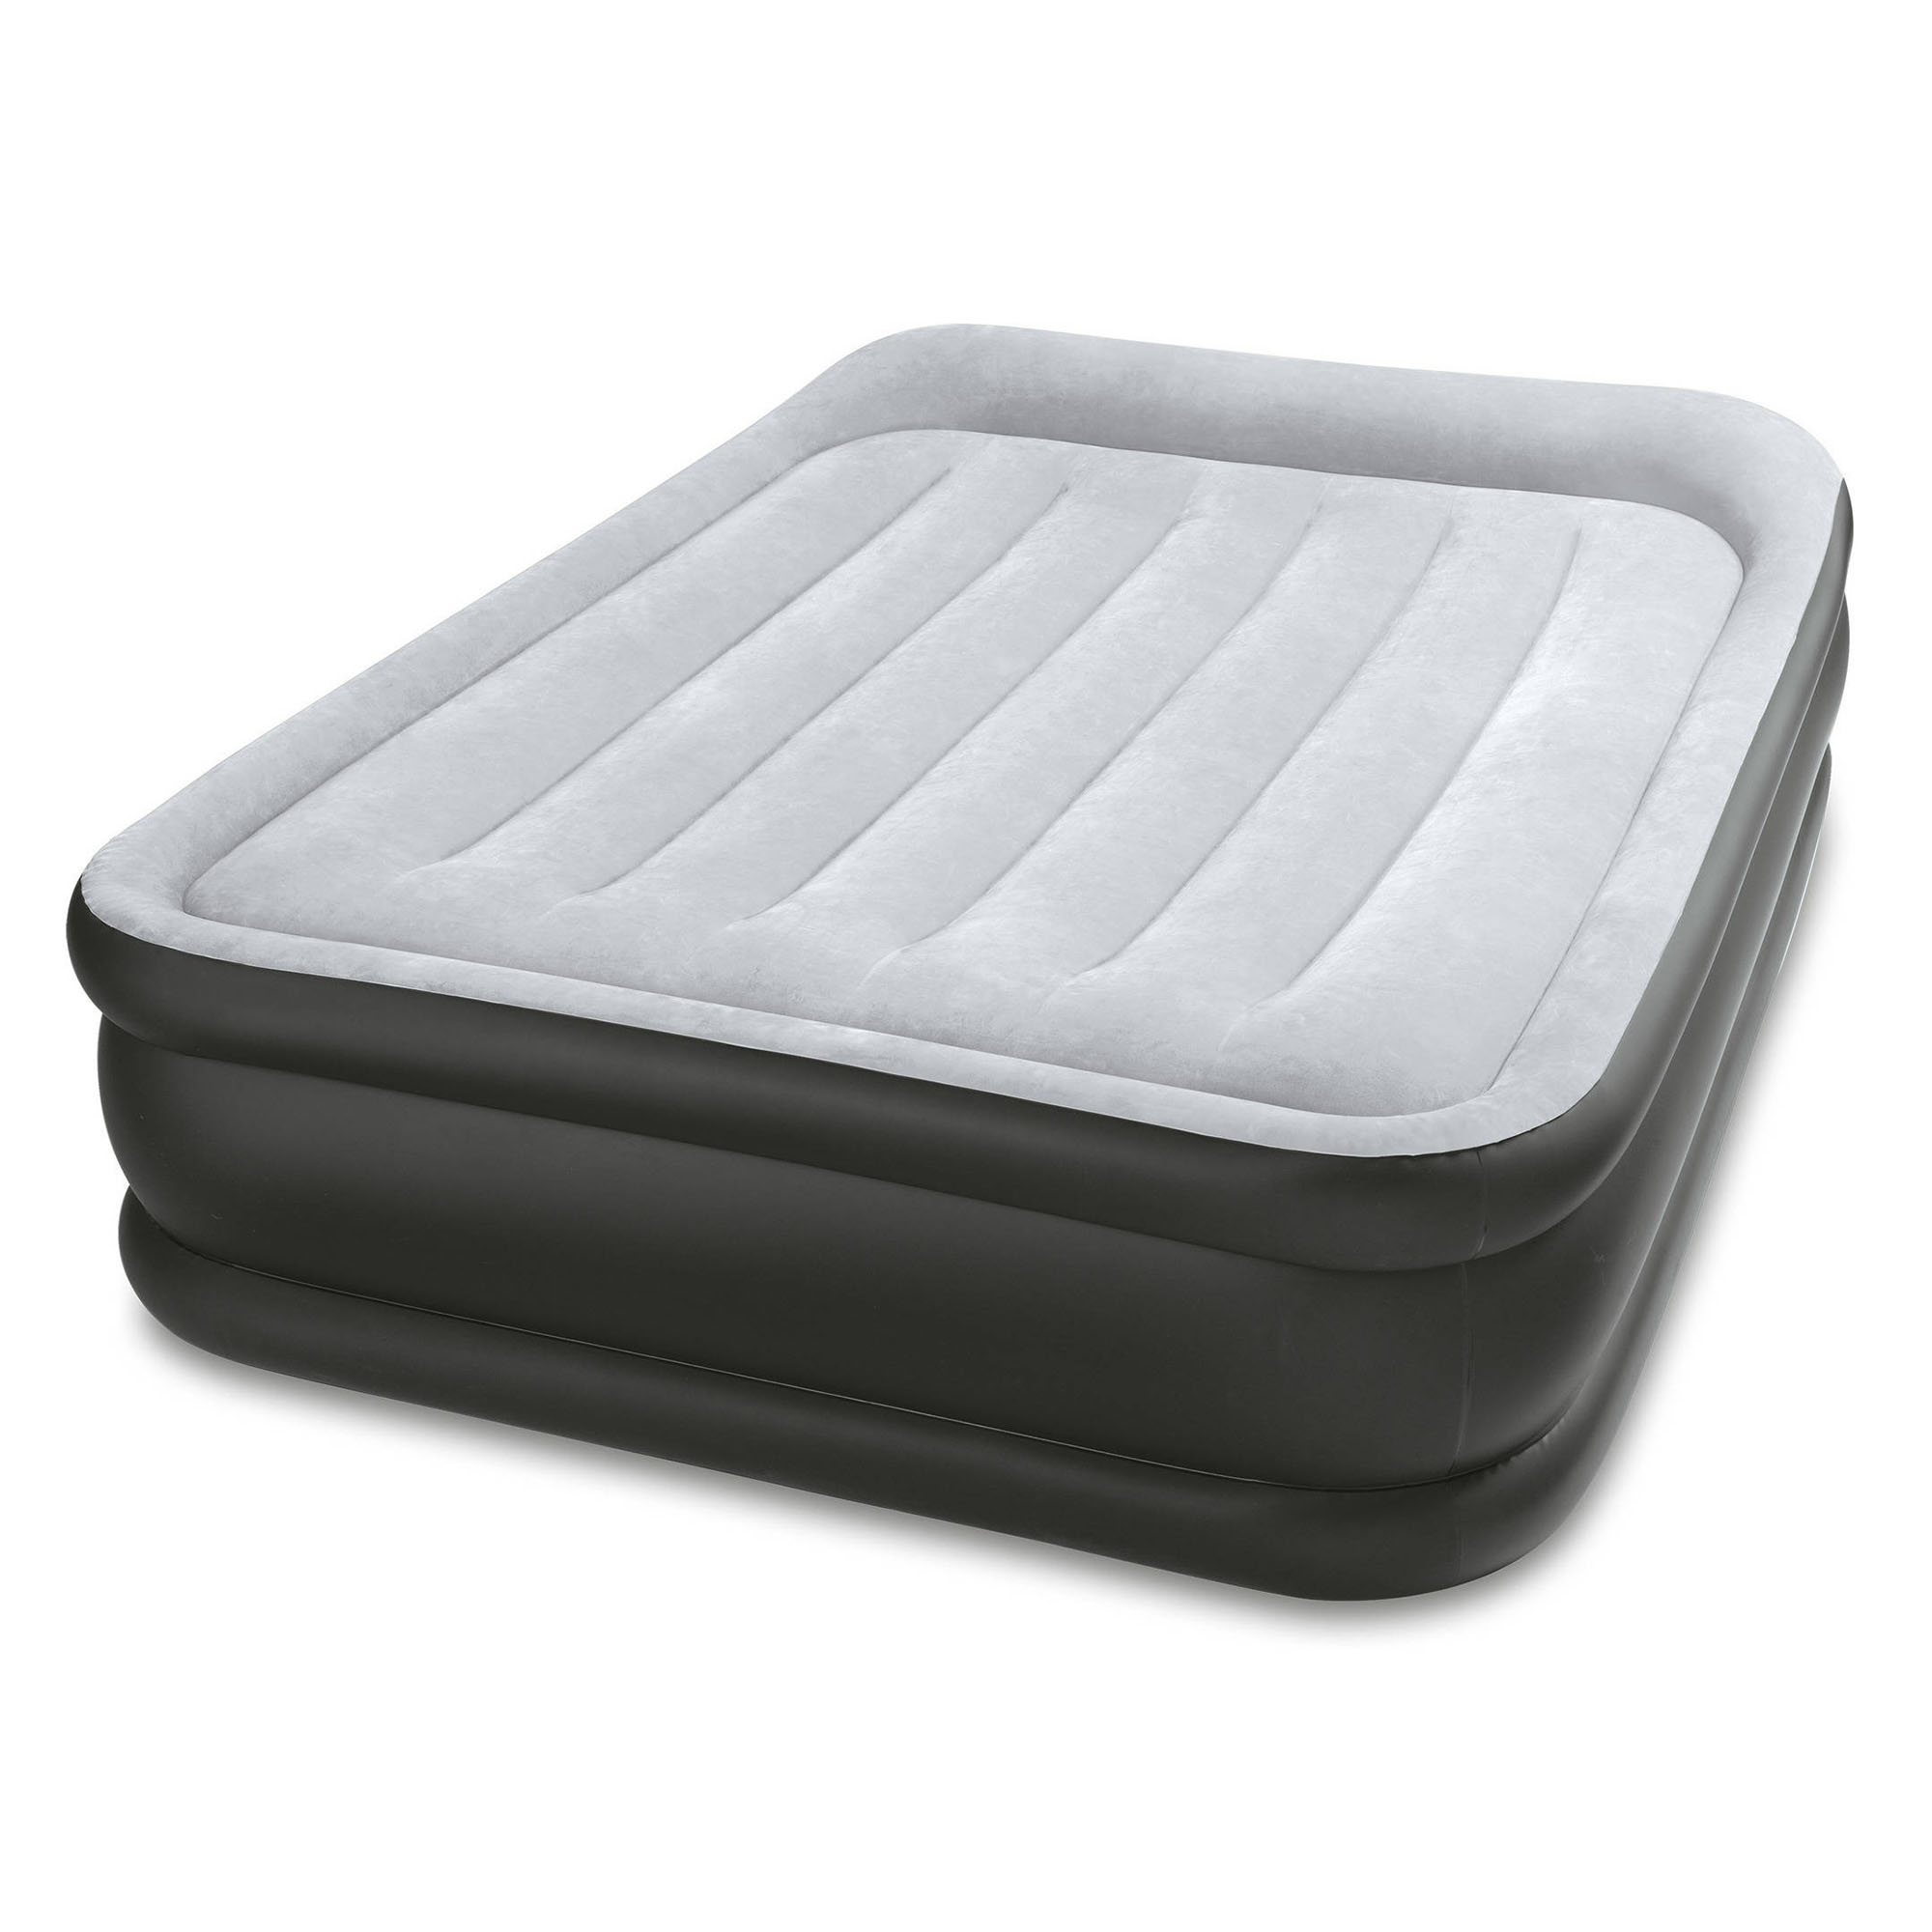 """Intex 16.5"""" Full Size DuraBeam Deluxe Pillow Rest Airbed Mattress with Built-In Pump by Intex"""